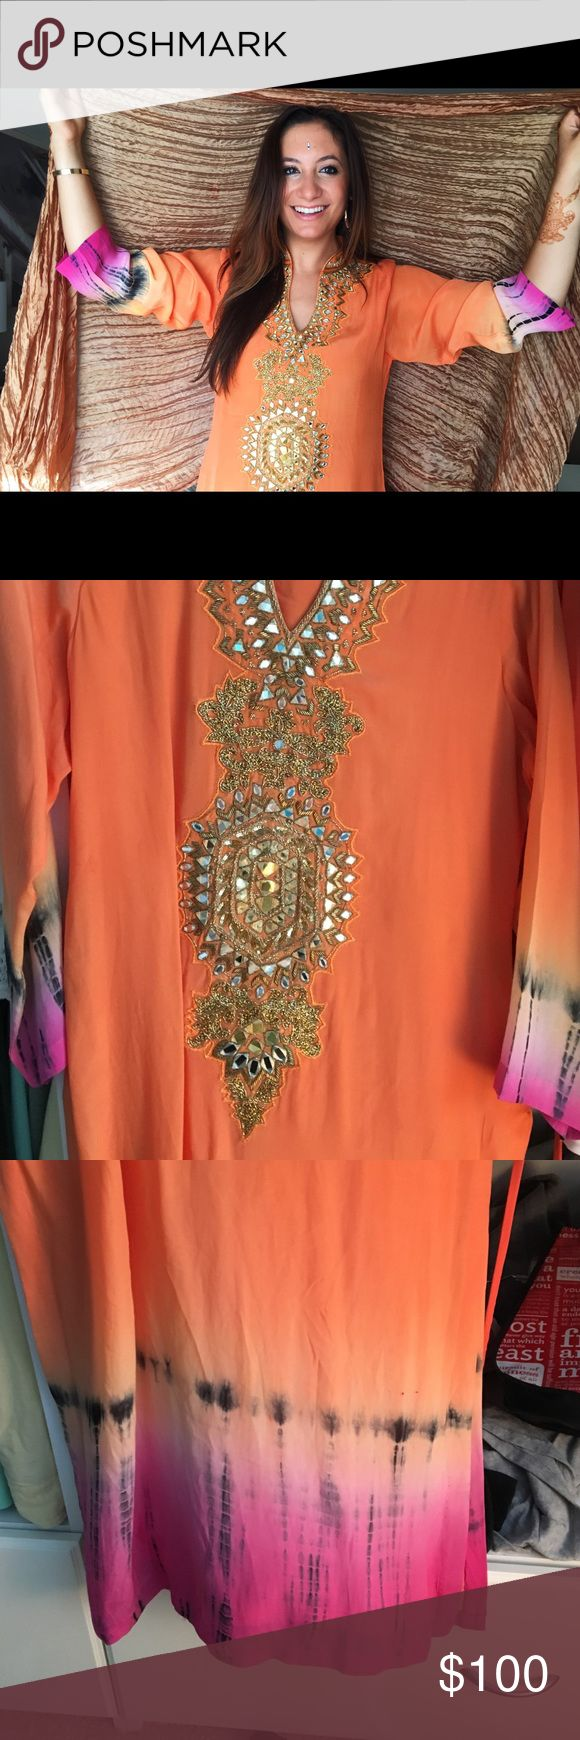 Embroidered Indian Tunic Orange tunic style Indian attire. Worn once to wedding. Perfect condition. Tops Tunics